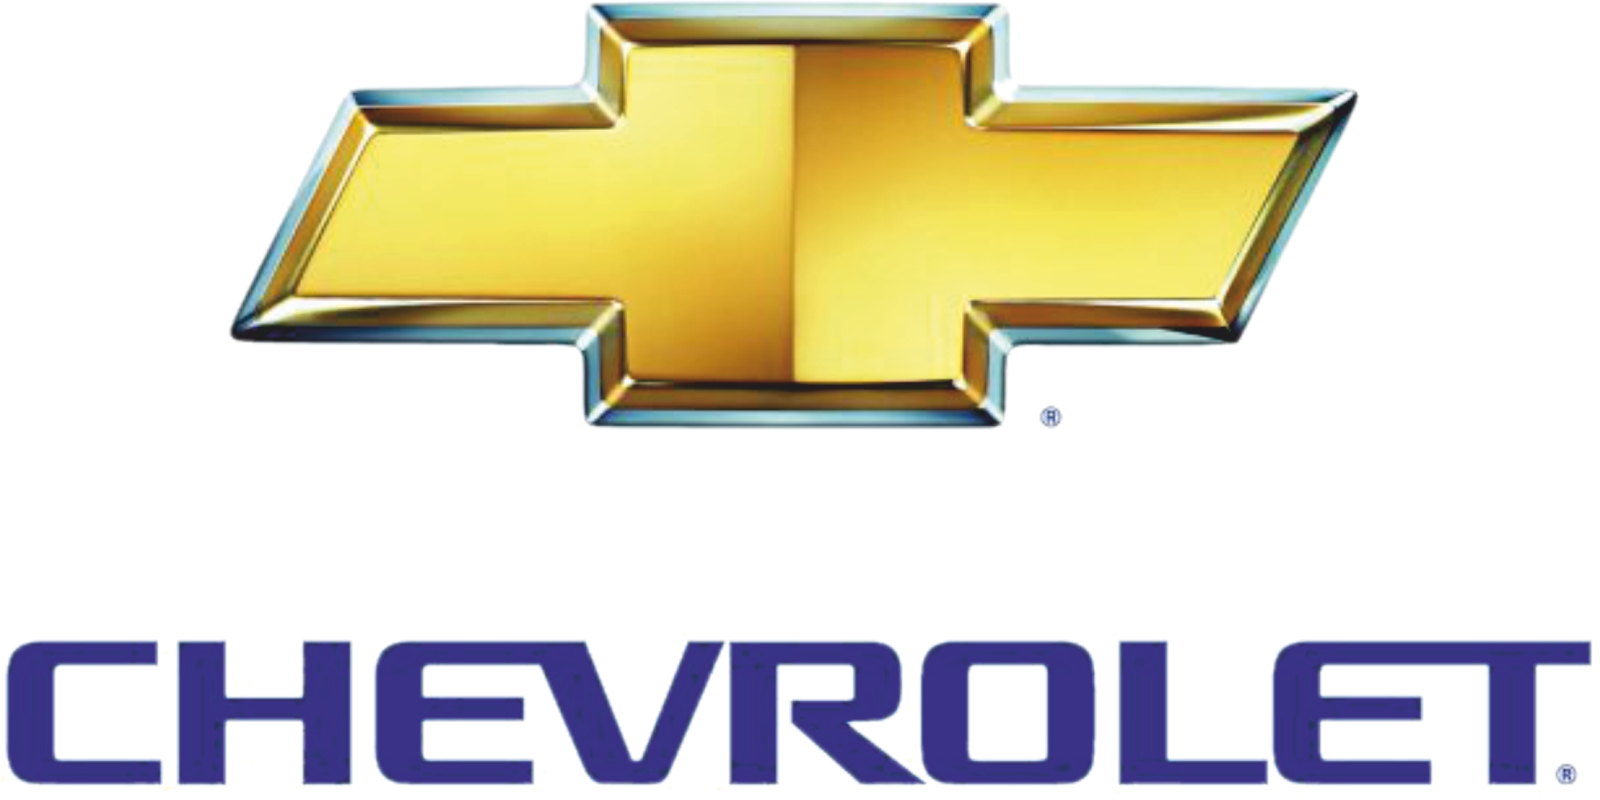 image for chevrolet logo vector 2015 wallpaper hd a pinterest rh pinterest com chevrolet logo vector png chevy logo vector image